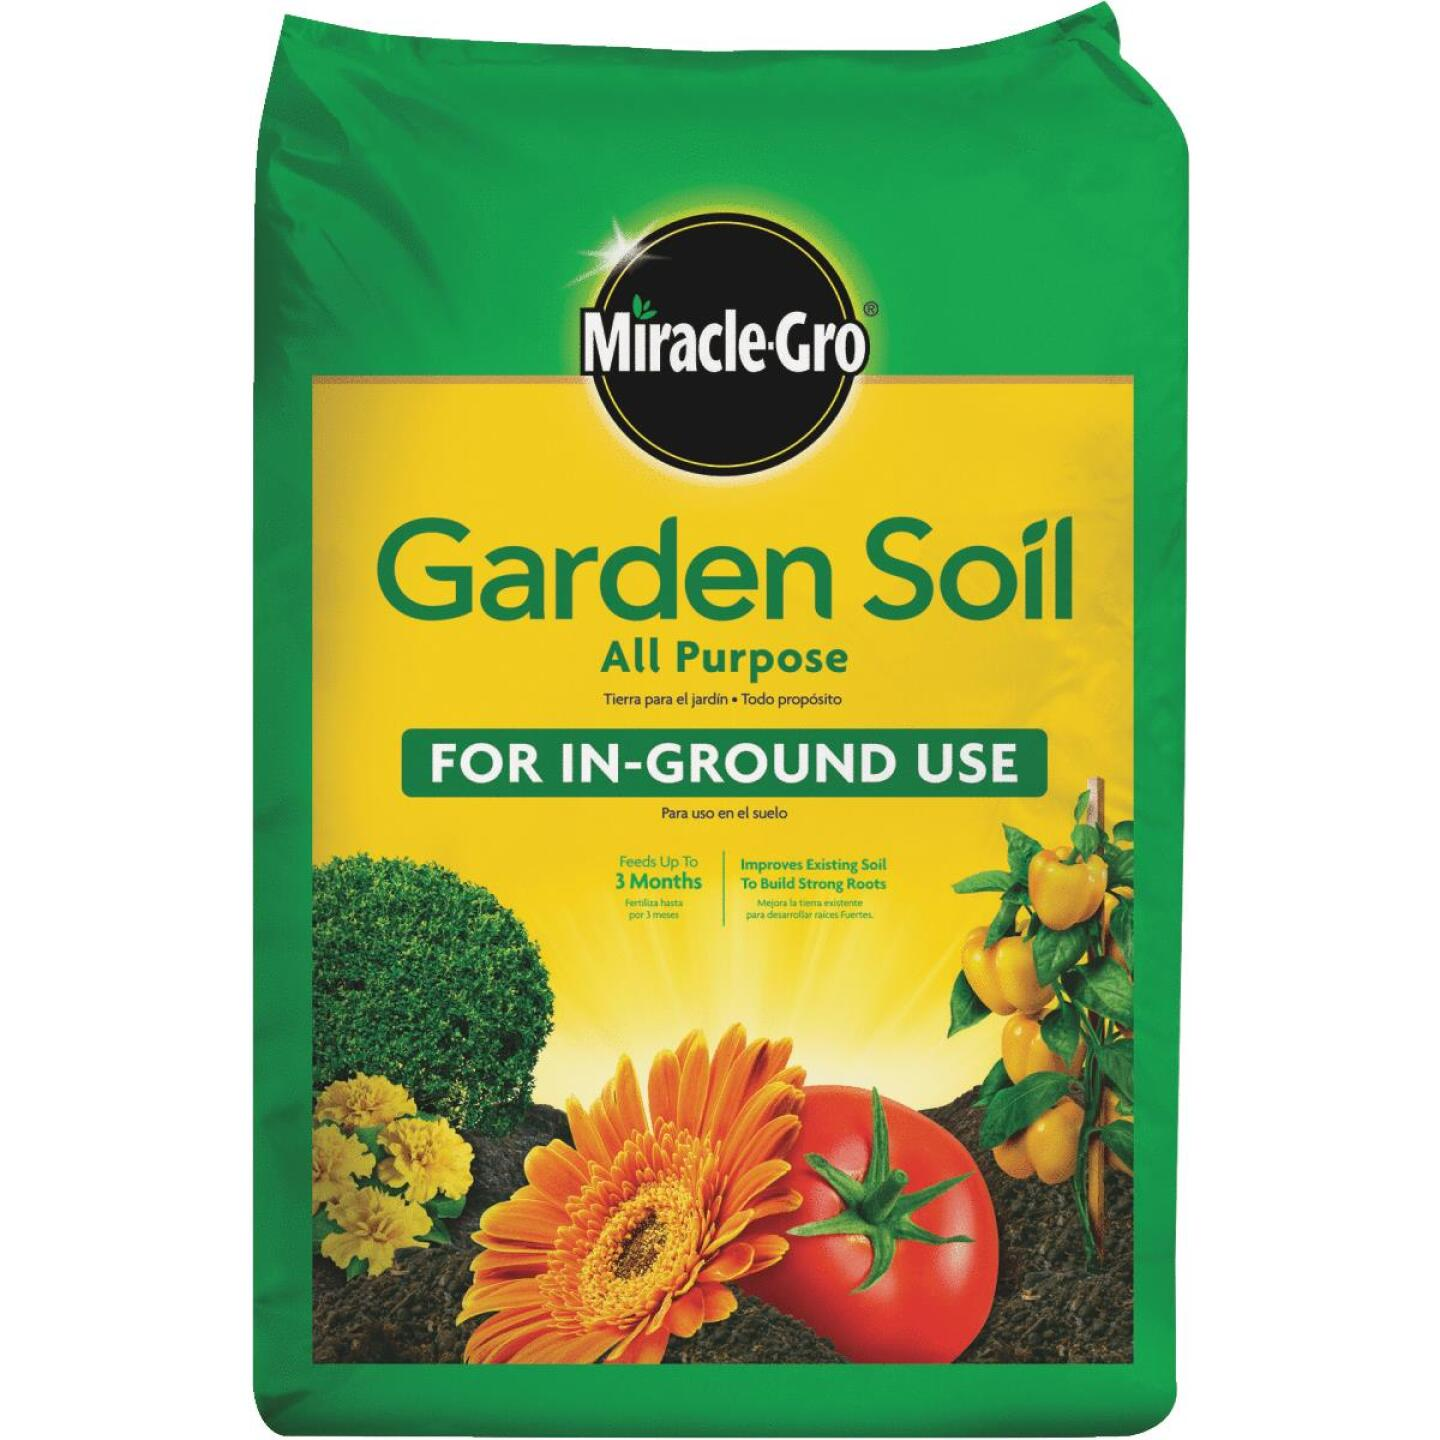 Miracle-Gro 2 Cu. Ft. All Purpose Garden Soil Image 1